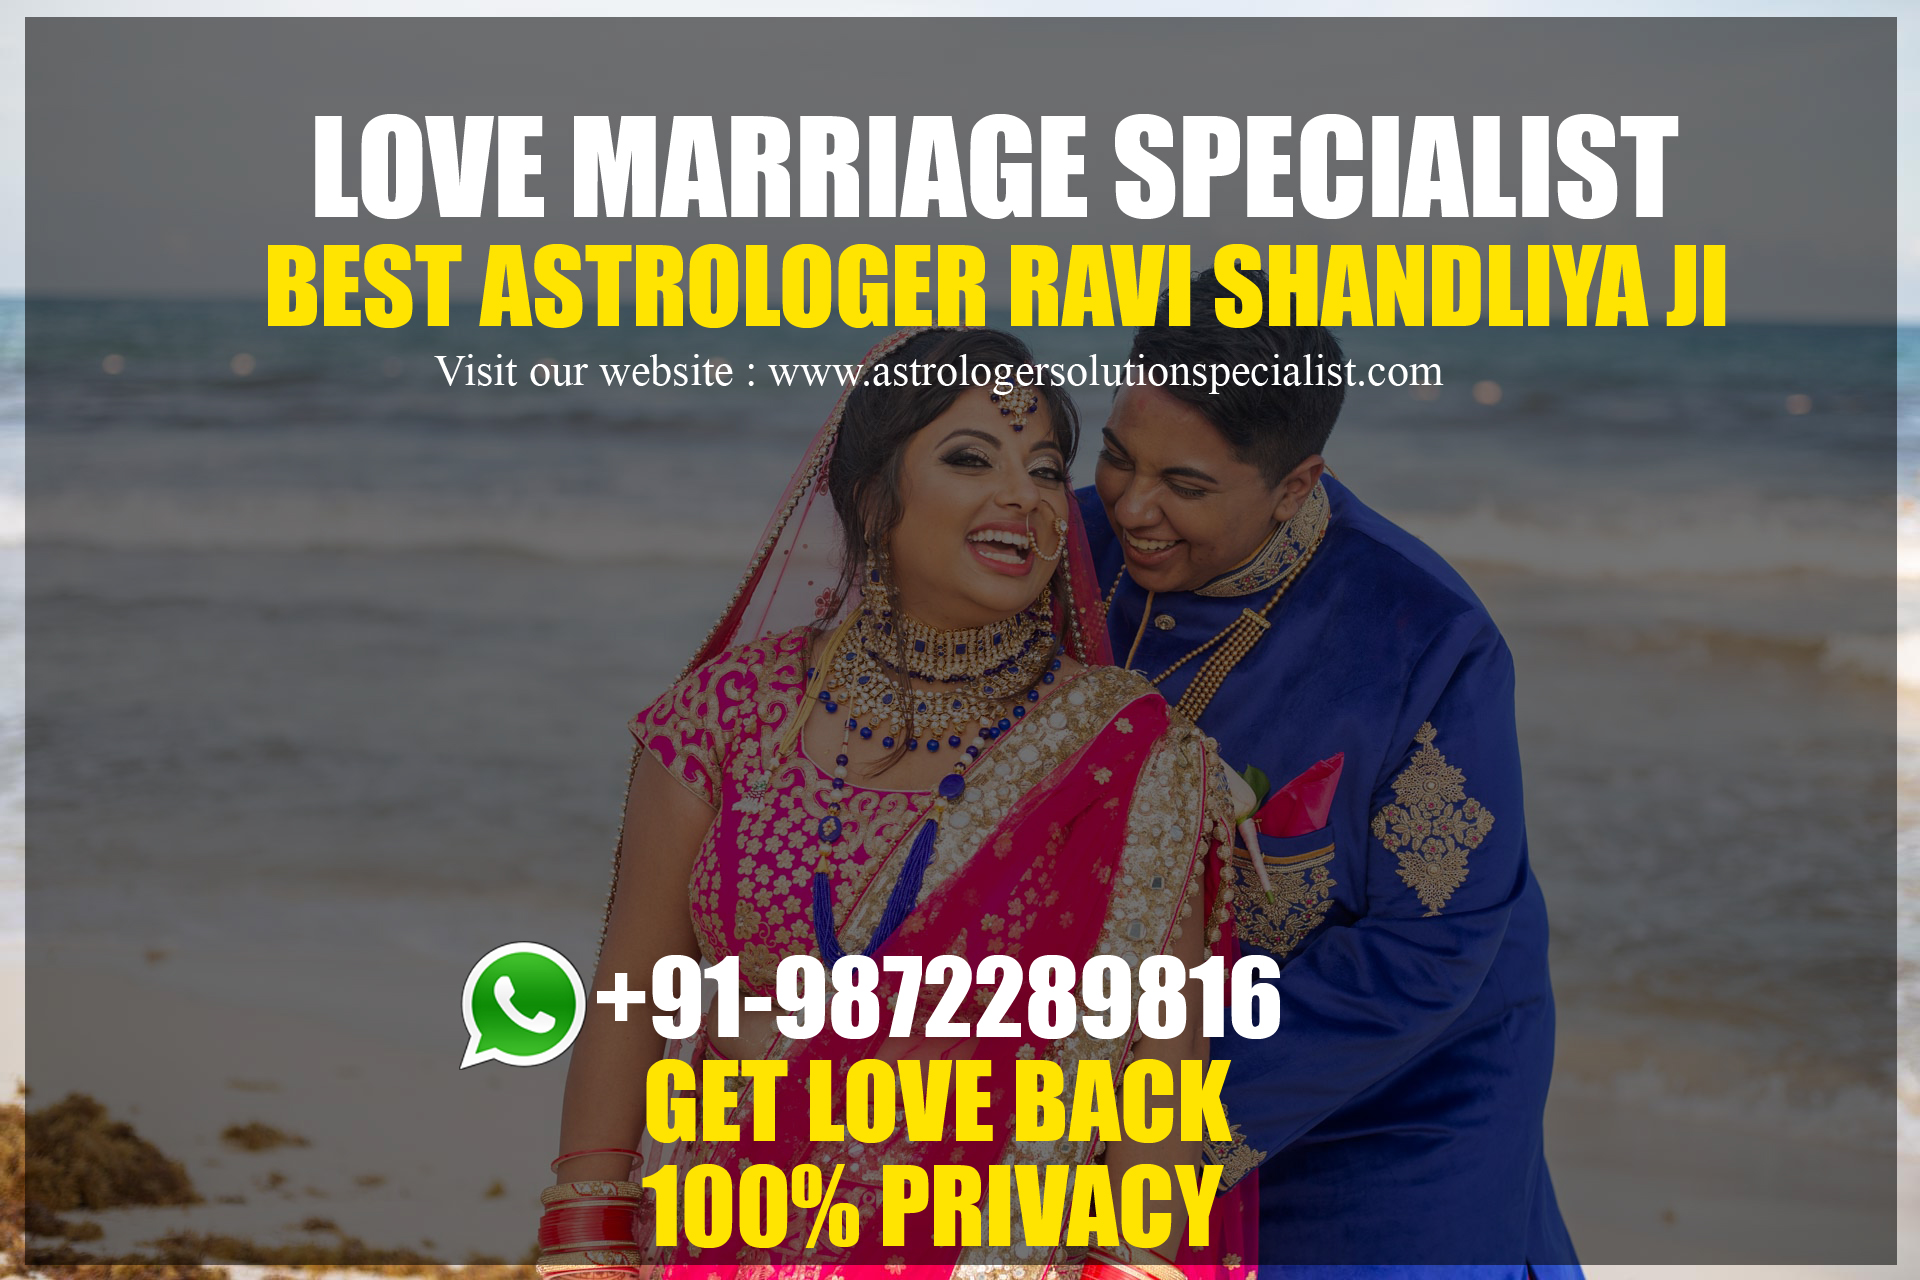 Love marriage specialist in Bangalore - +91-9872289816